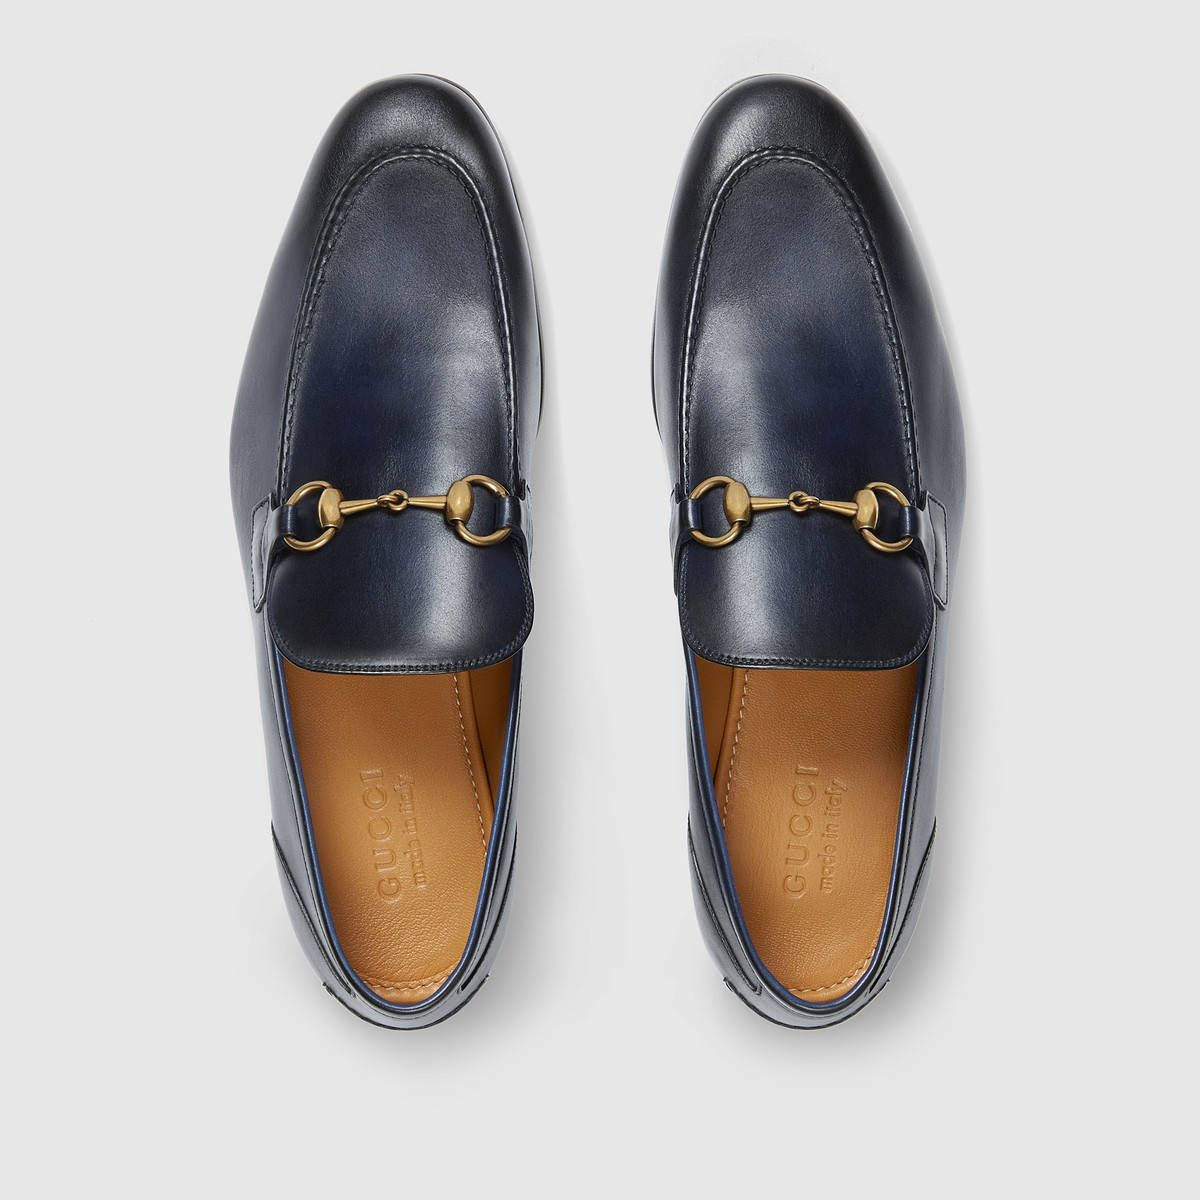 Gucci Horsebit Loafers, Yes or No?